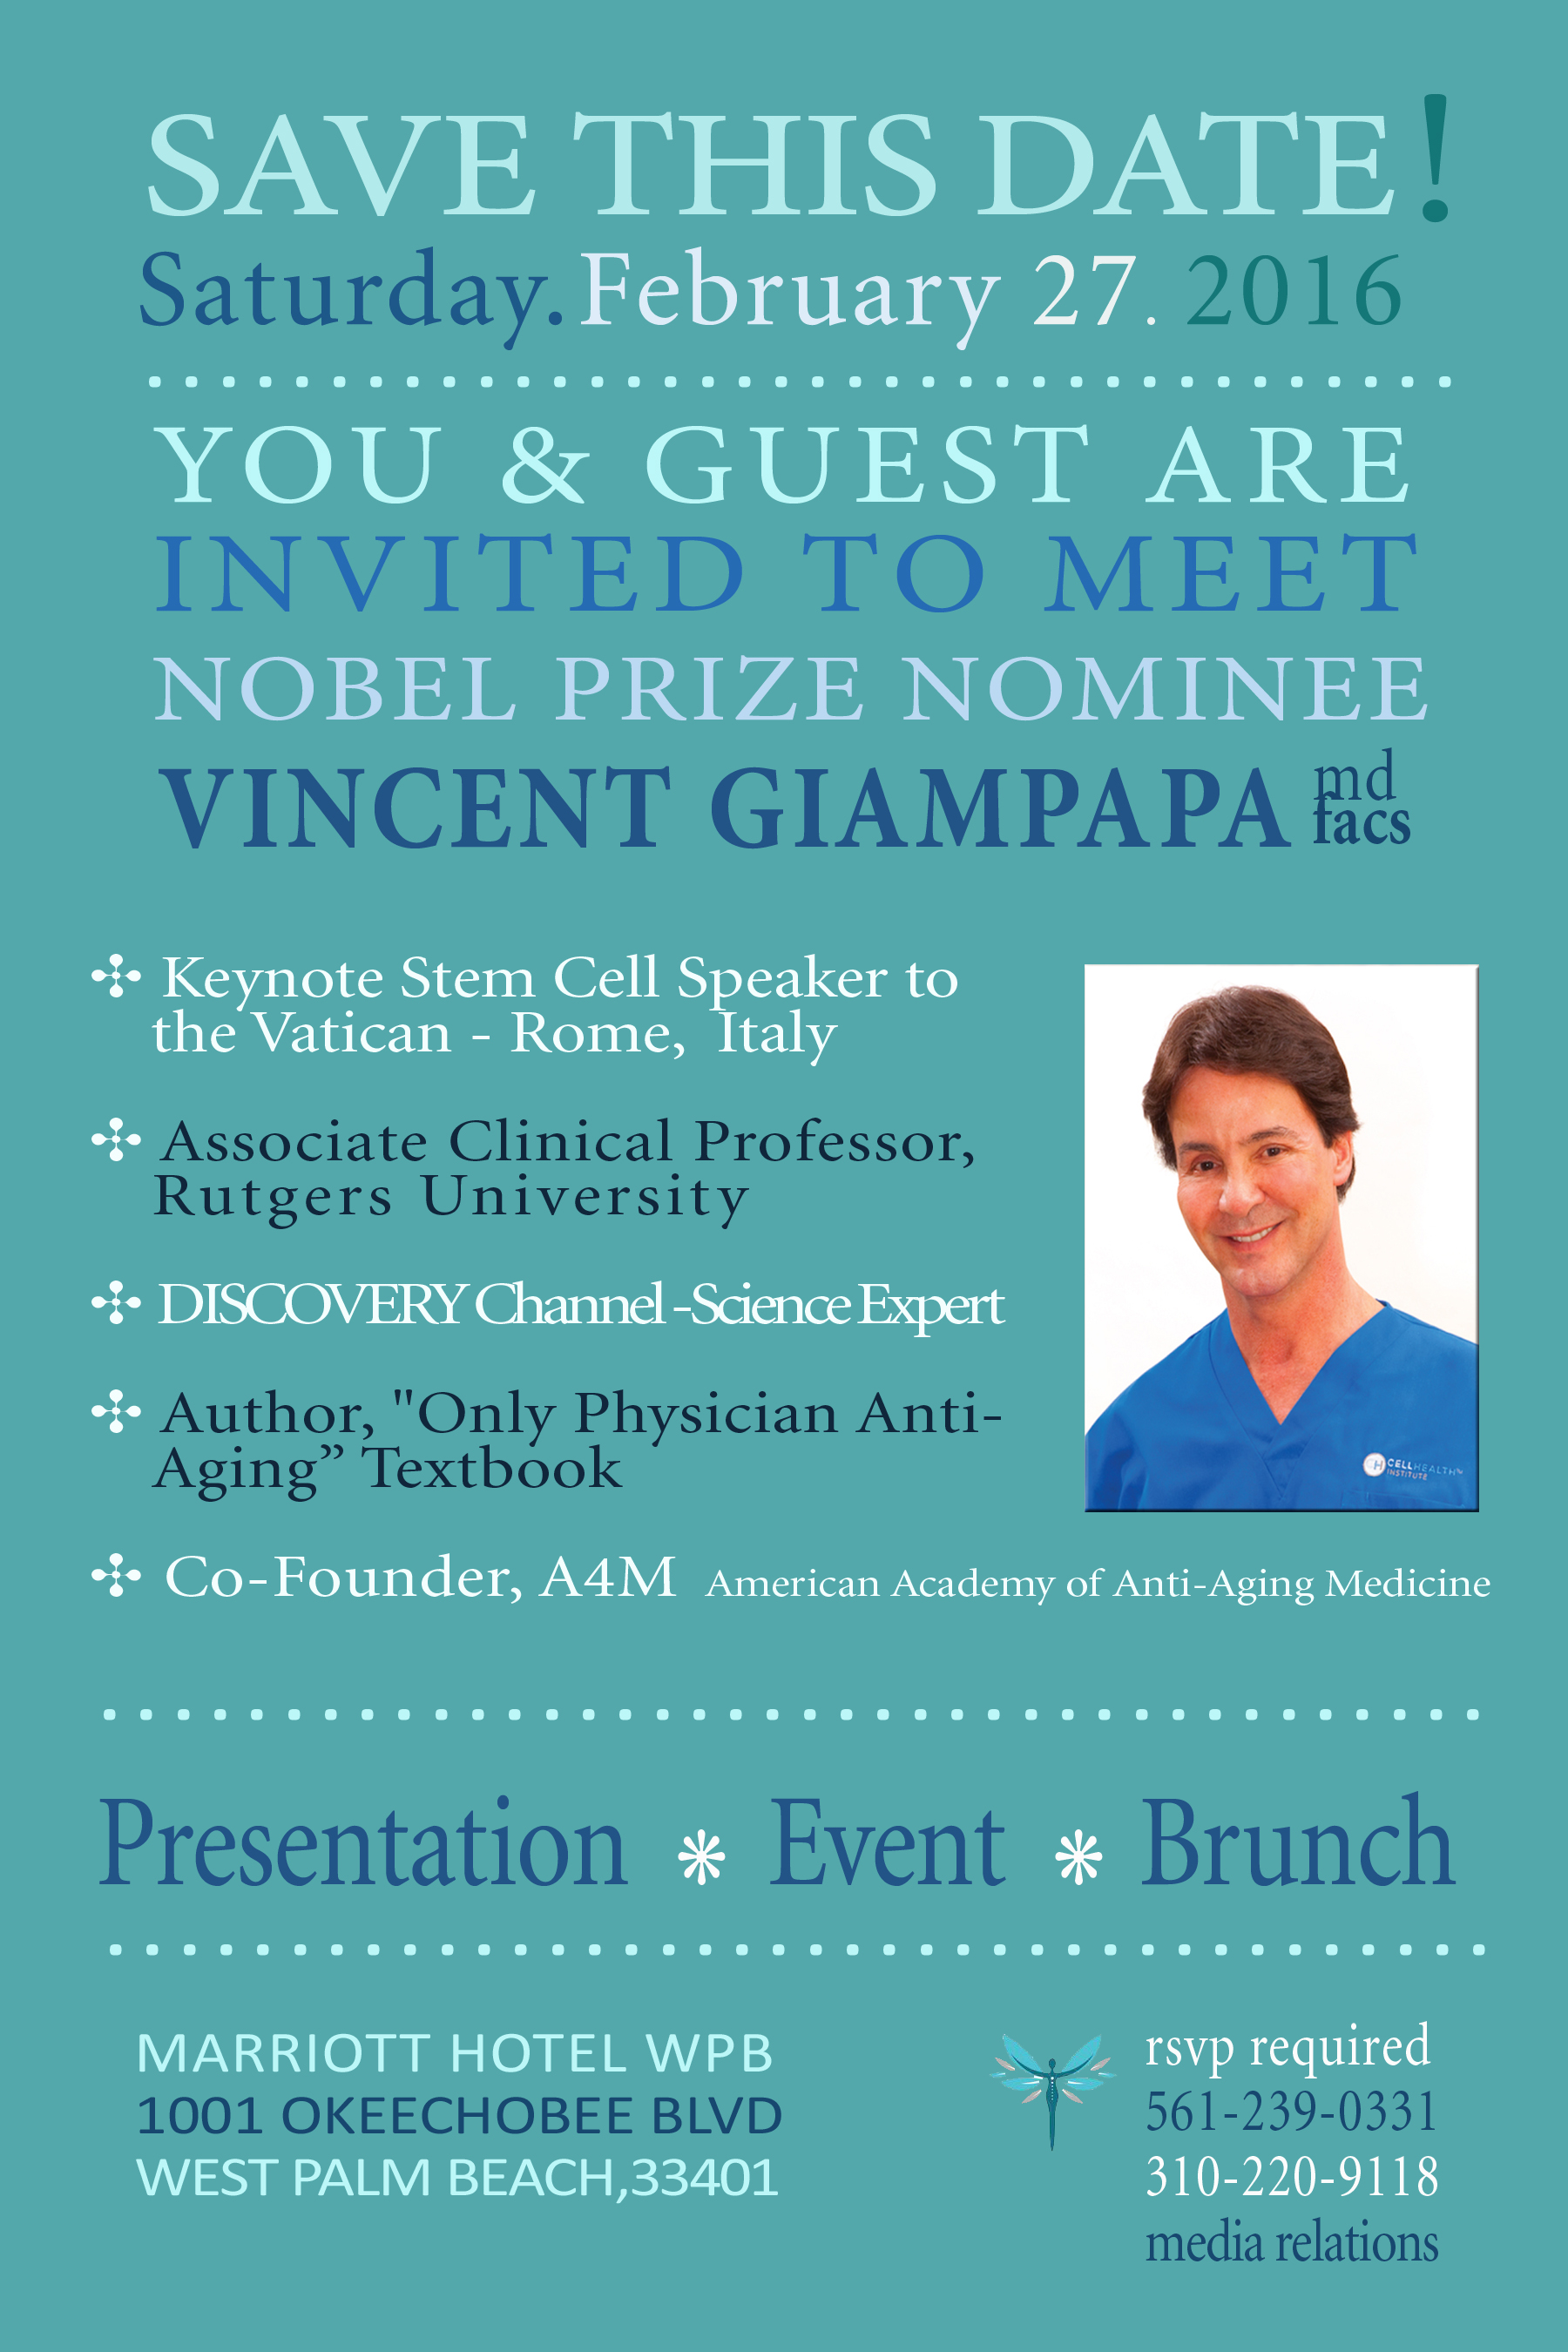 V. Giampapa, MD-FACS, Nobel Prize Nominee to Present on Advances in Stem Cell Research & Applications, Feb. 27 – Palm Beach, Florida